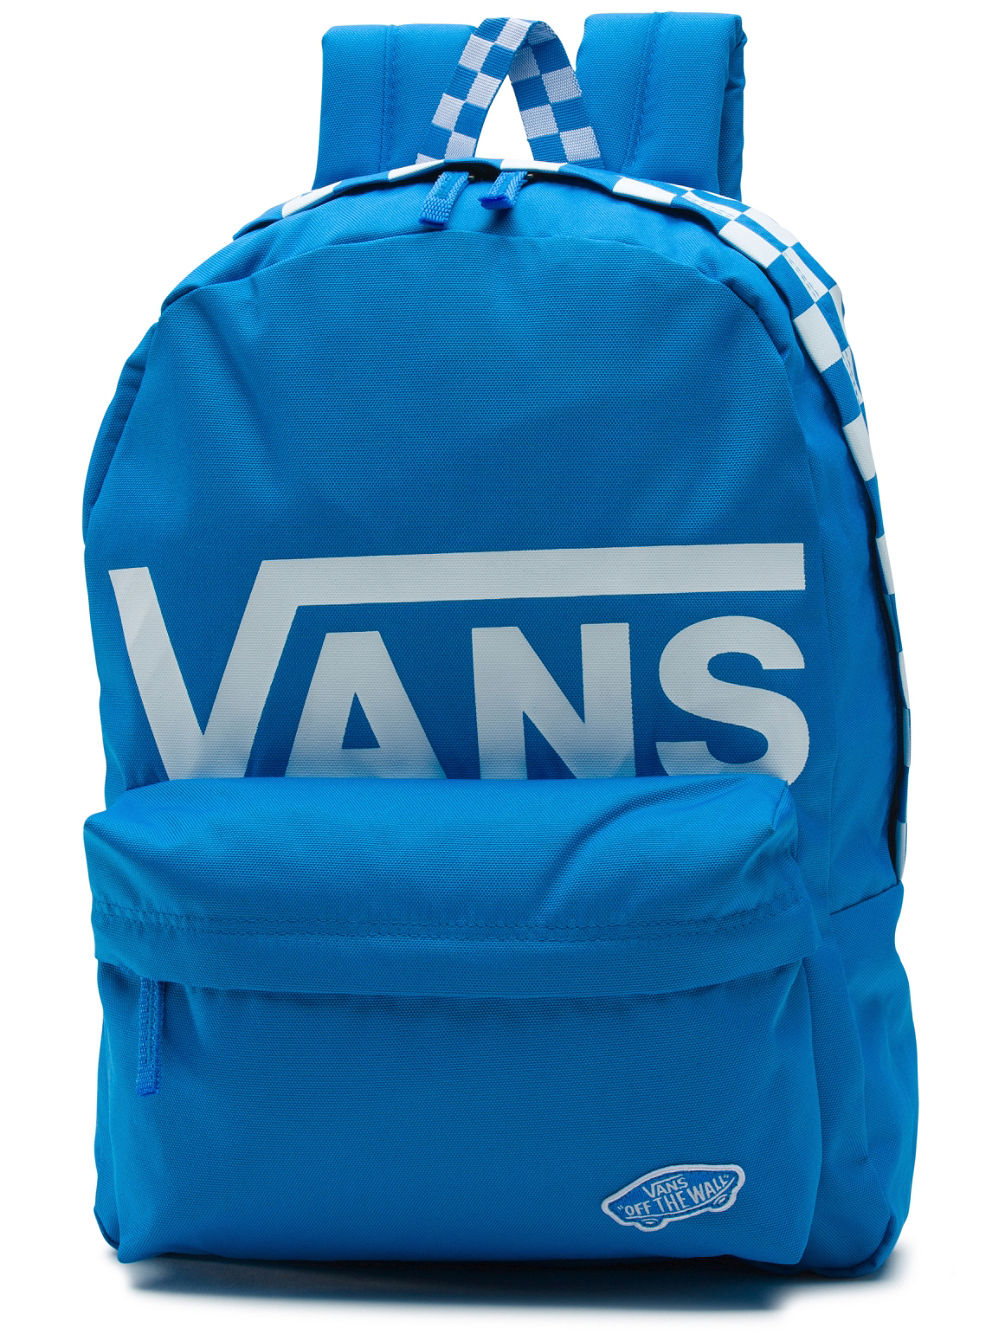 41ffa3d463 Vans Sporty Realm Backpack Blue